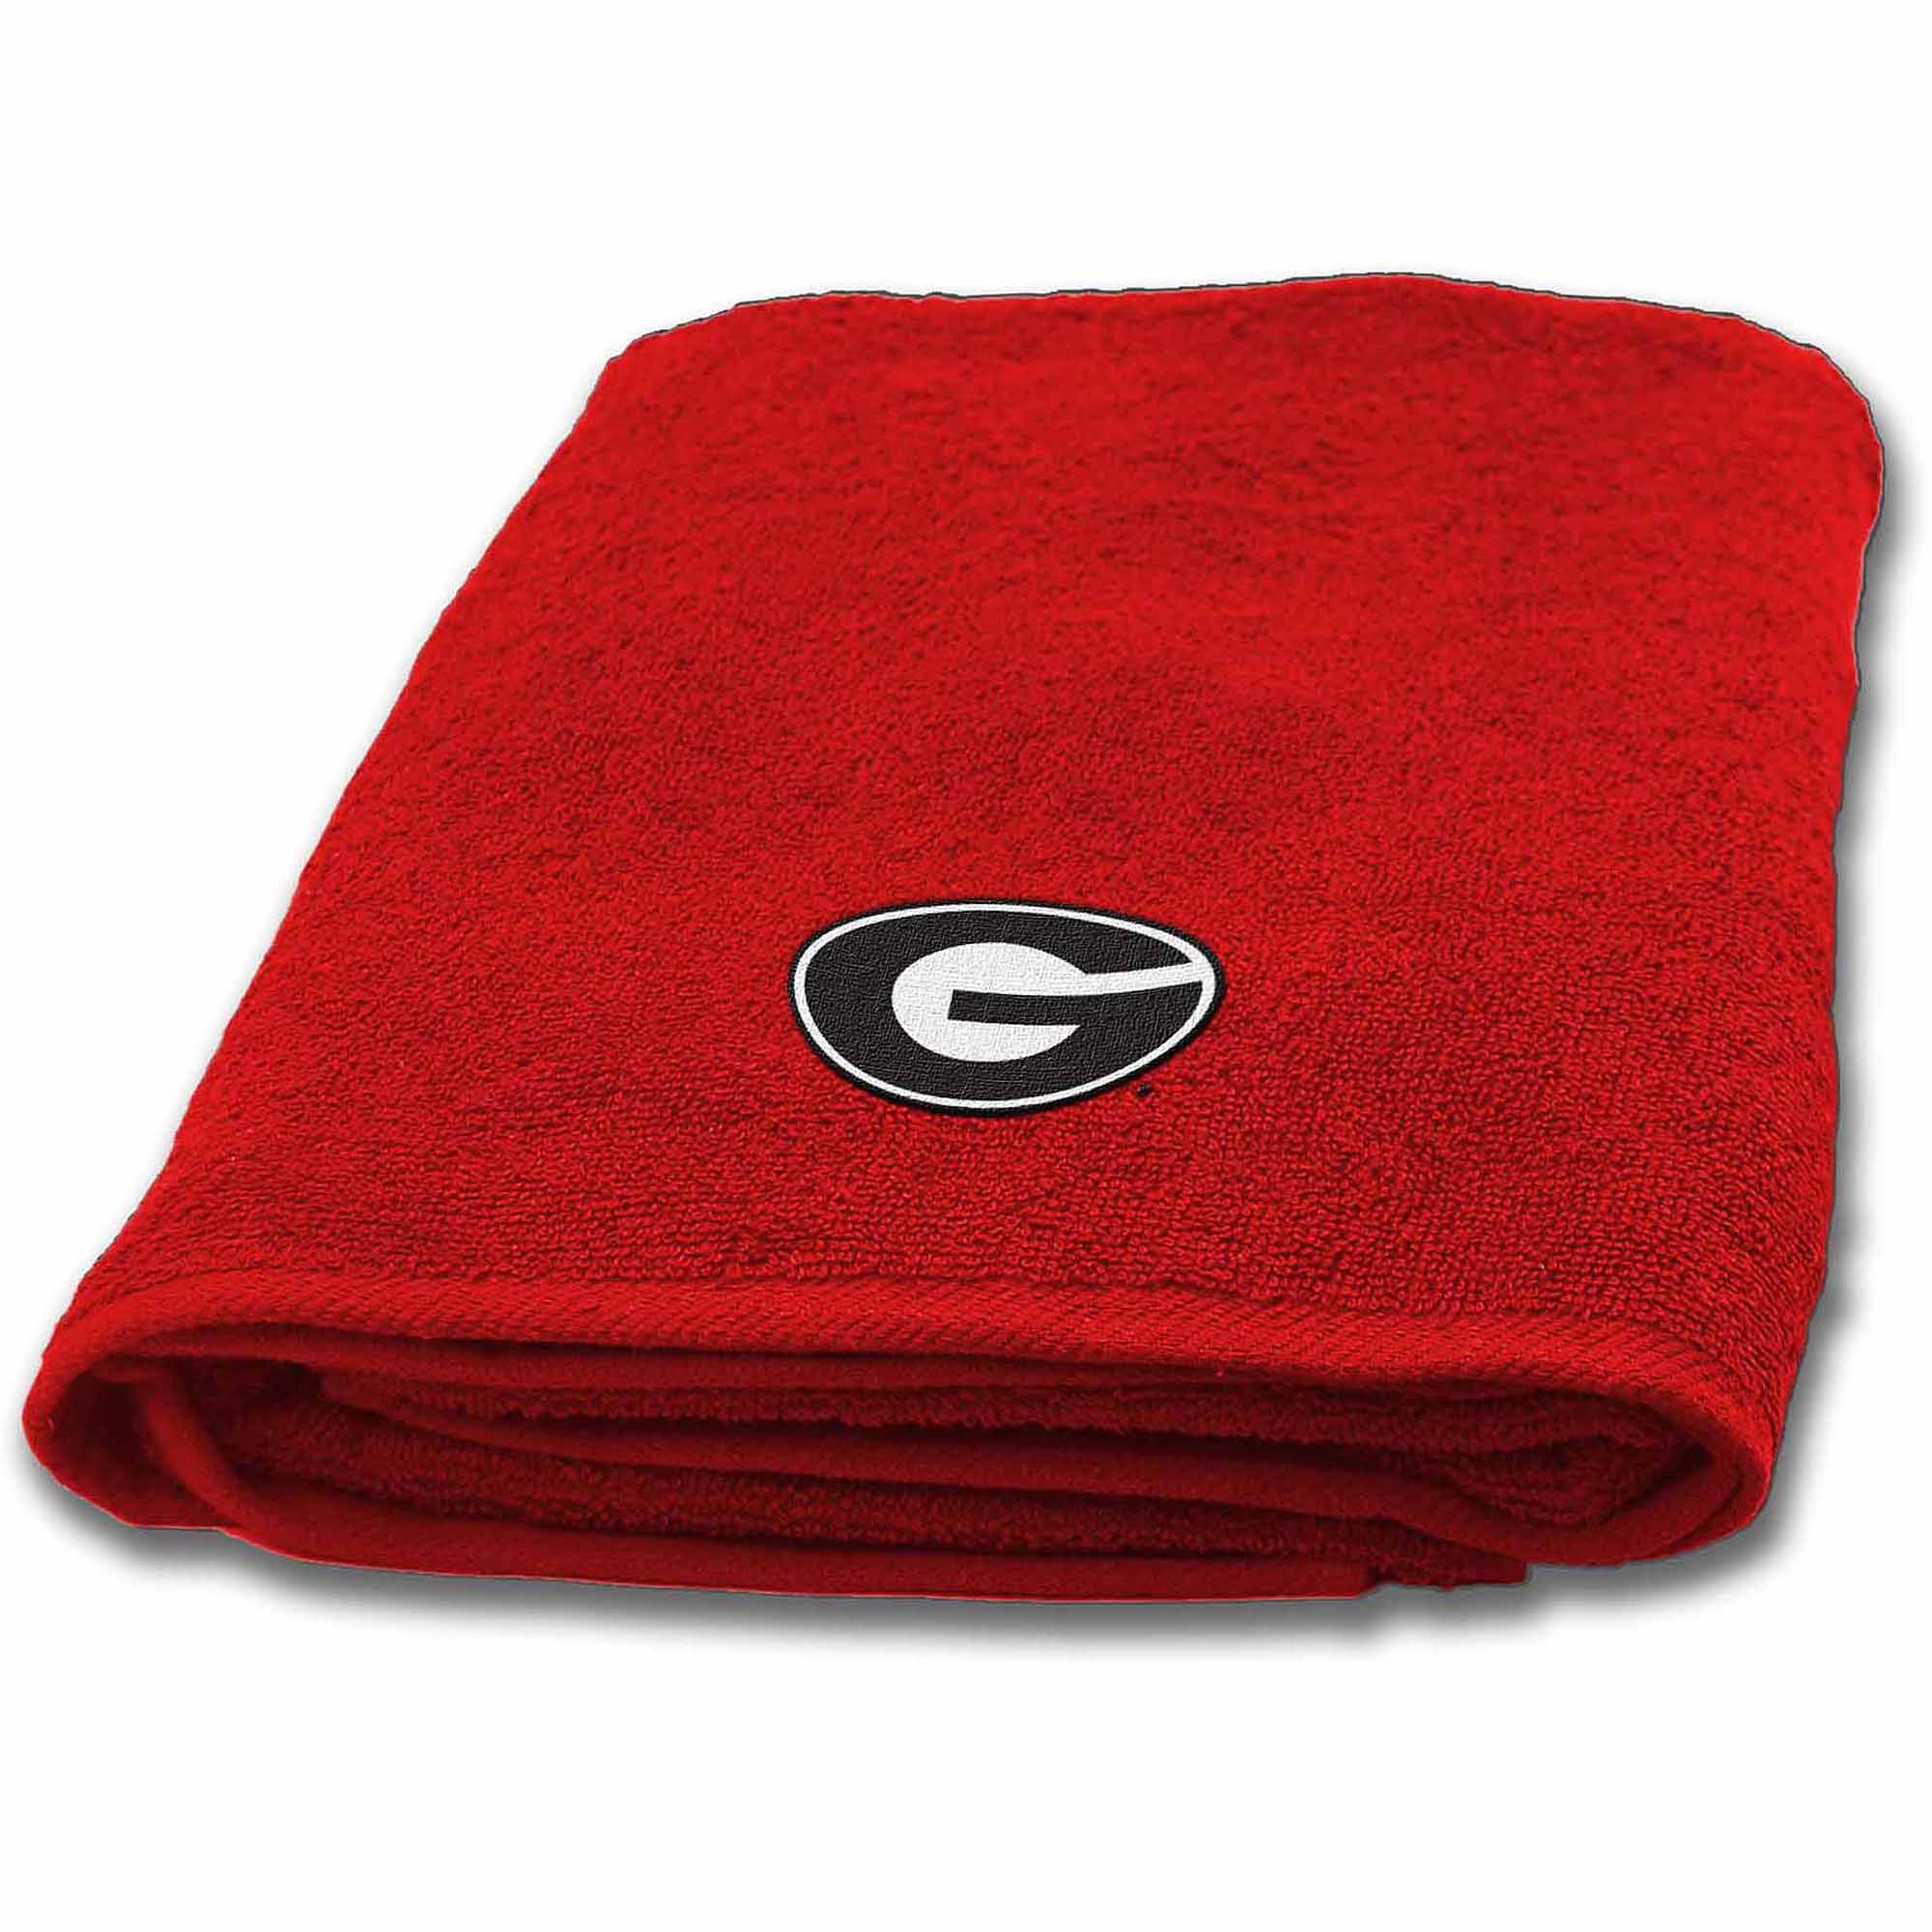 NCAA University of Georgia Decorative Bath Collection - Bath Towel